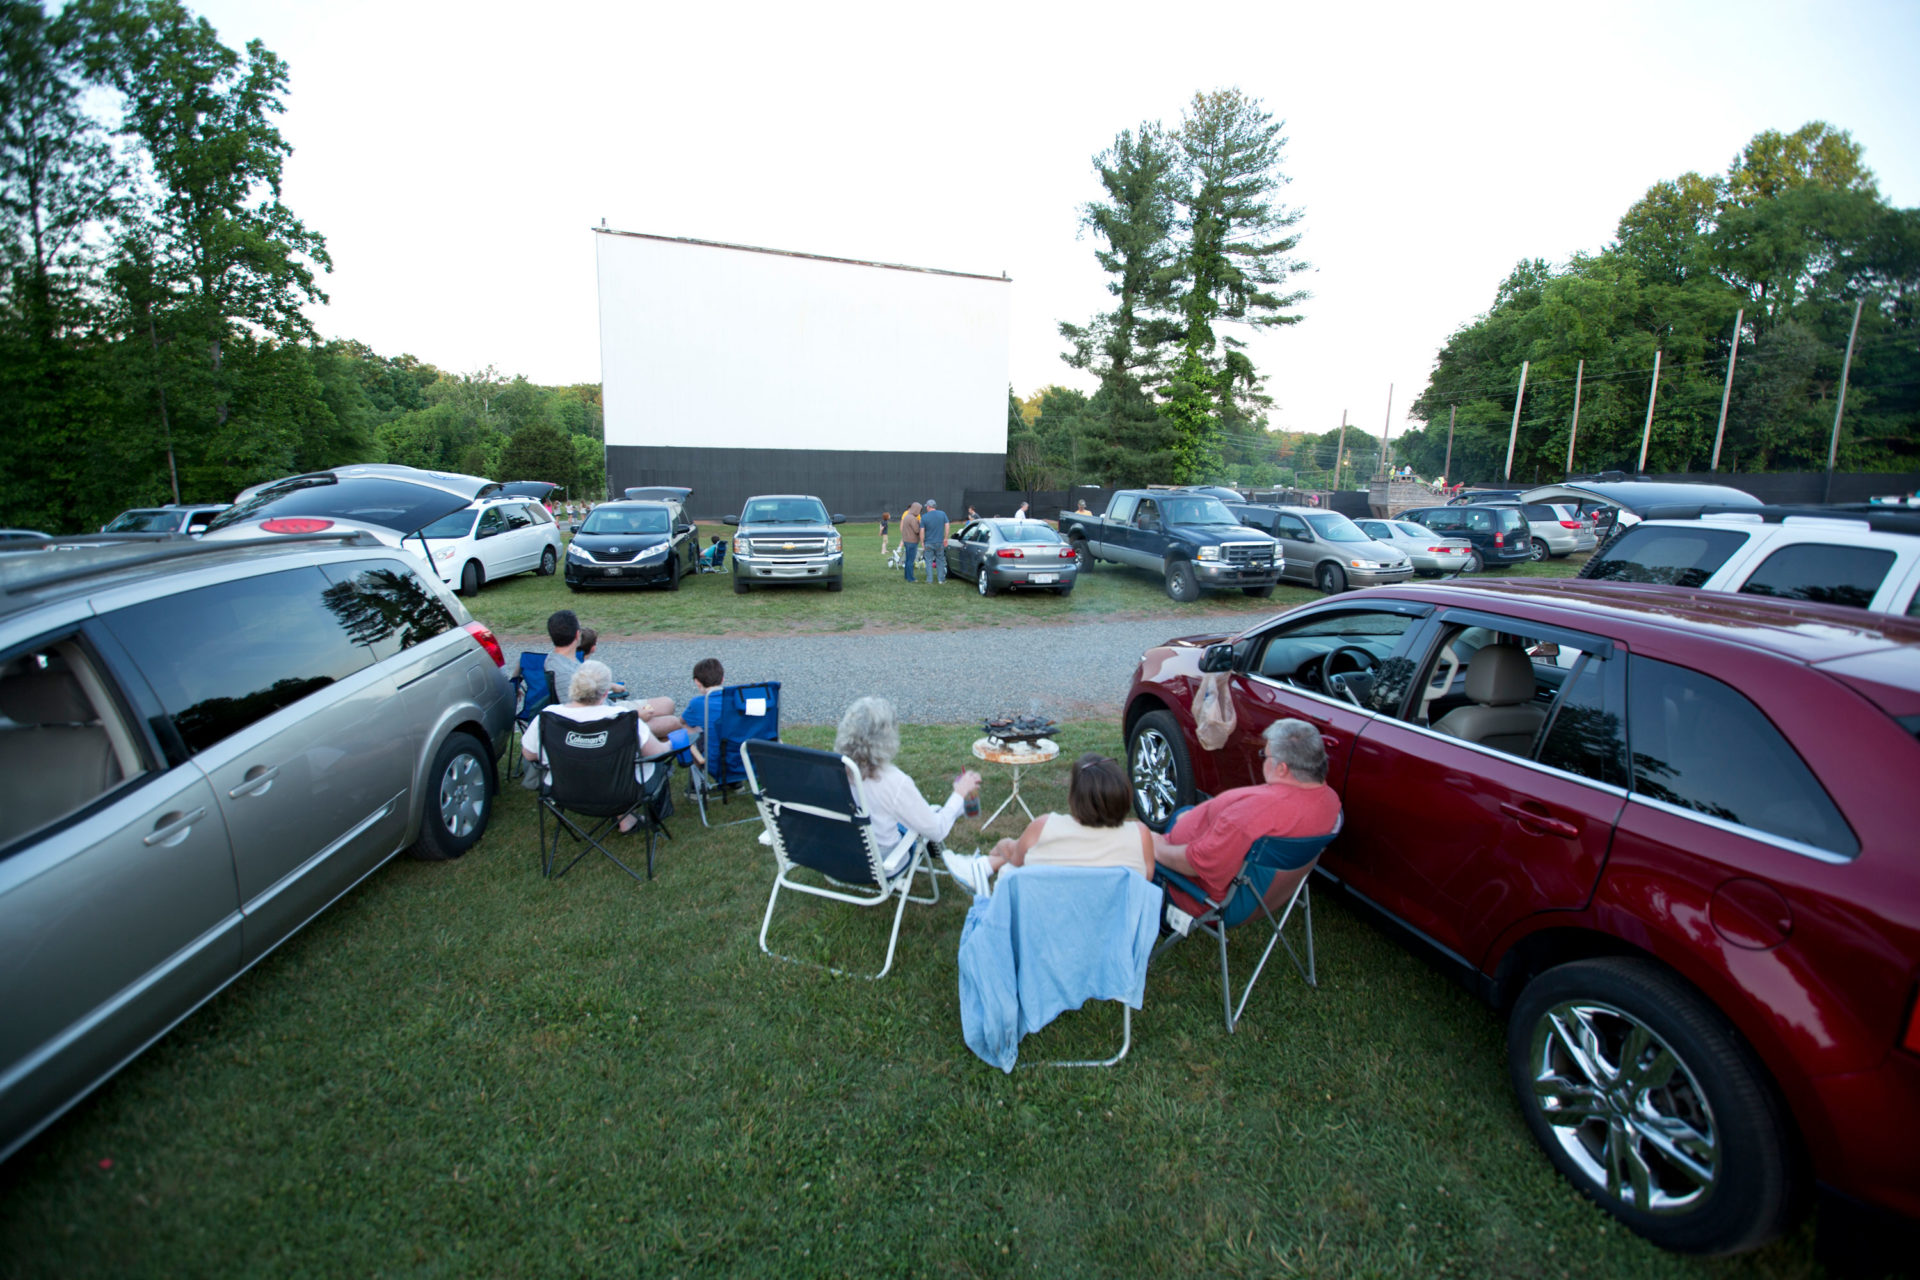 A group of people sitting in chairs by their cars waiting on the movie to start.